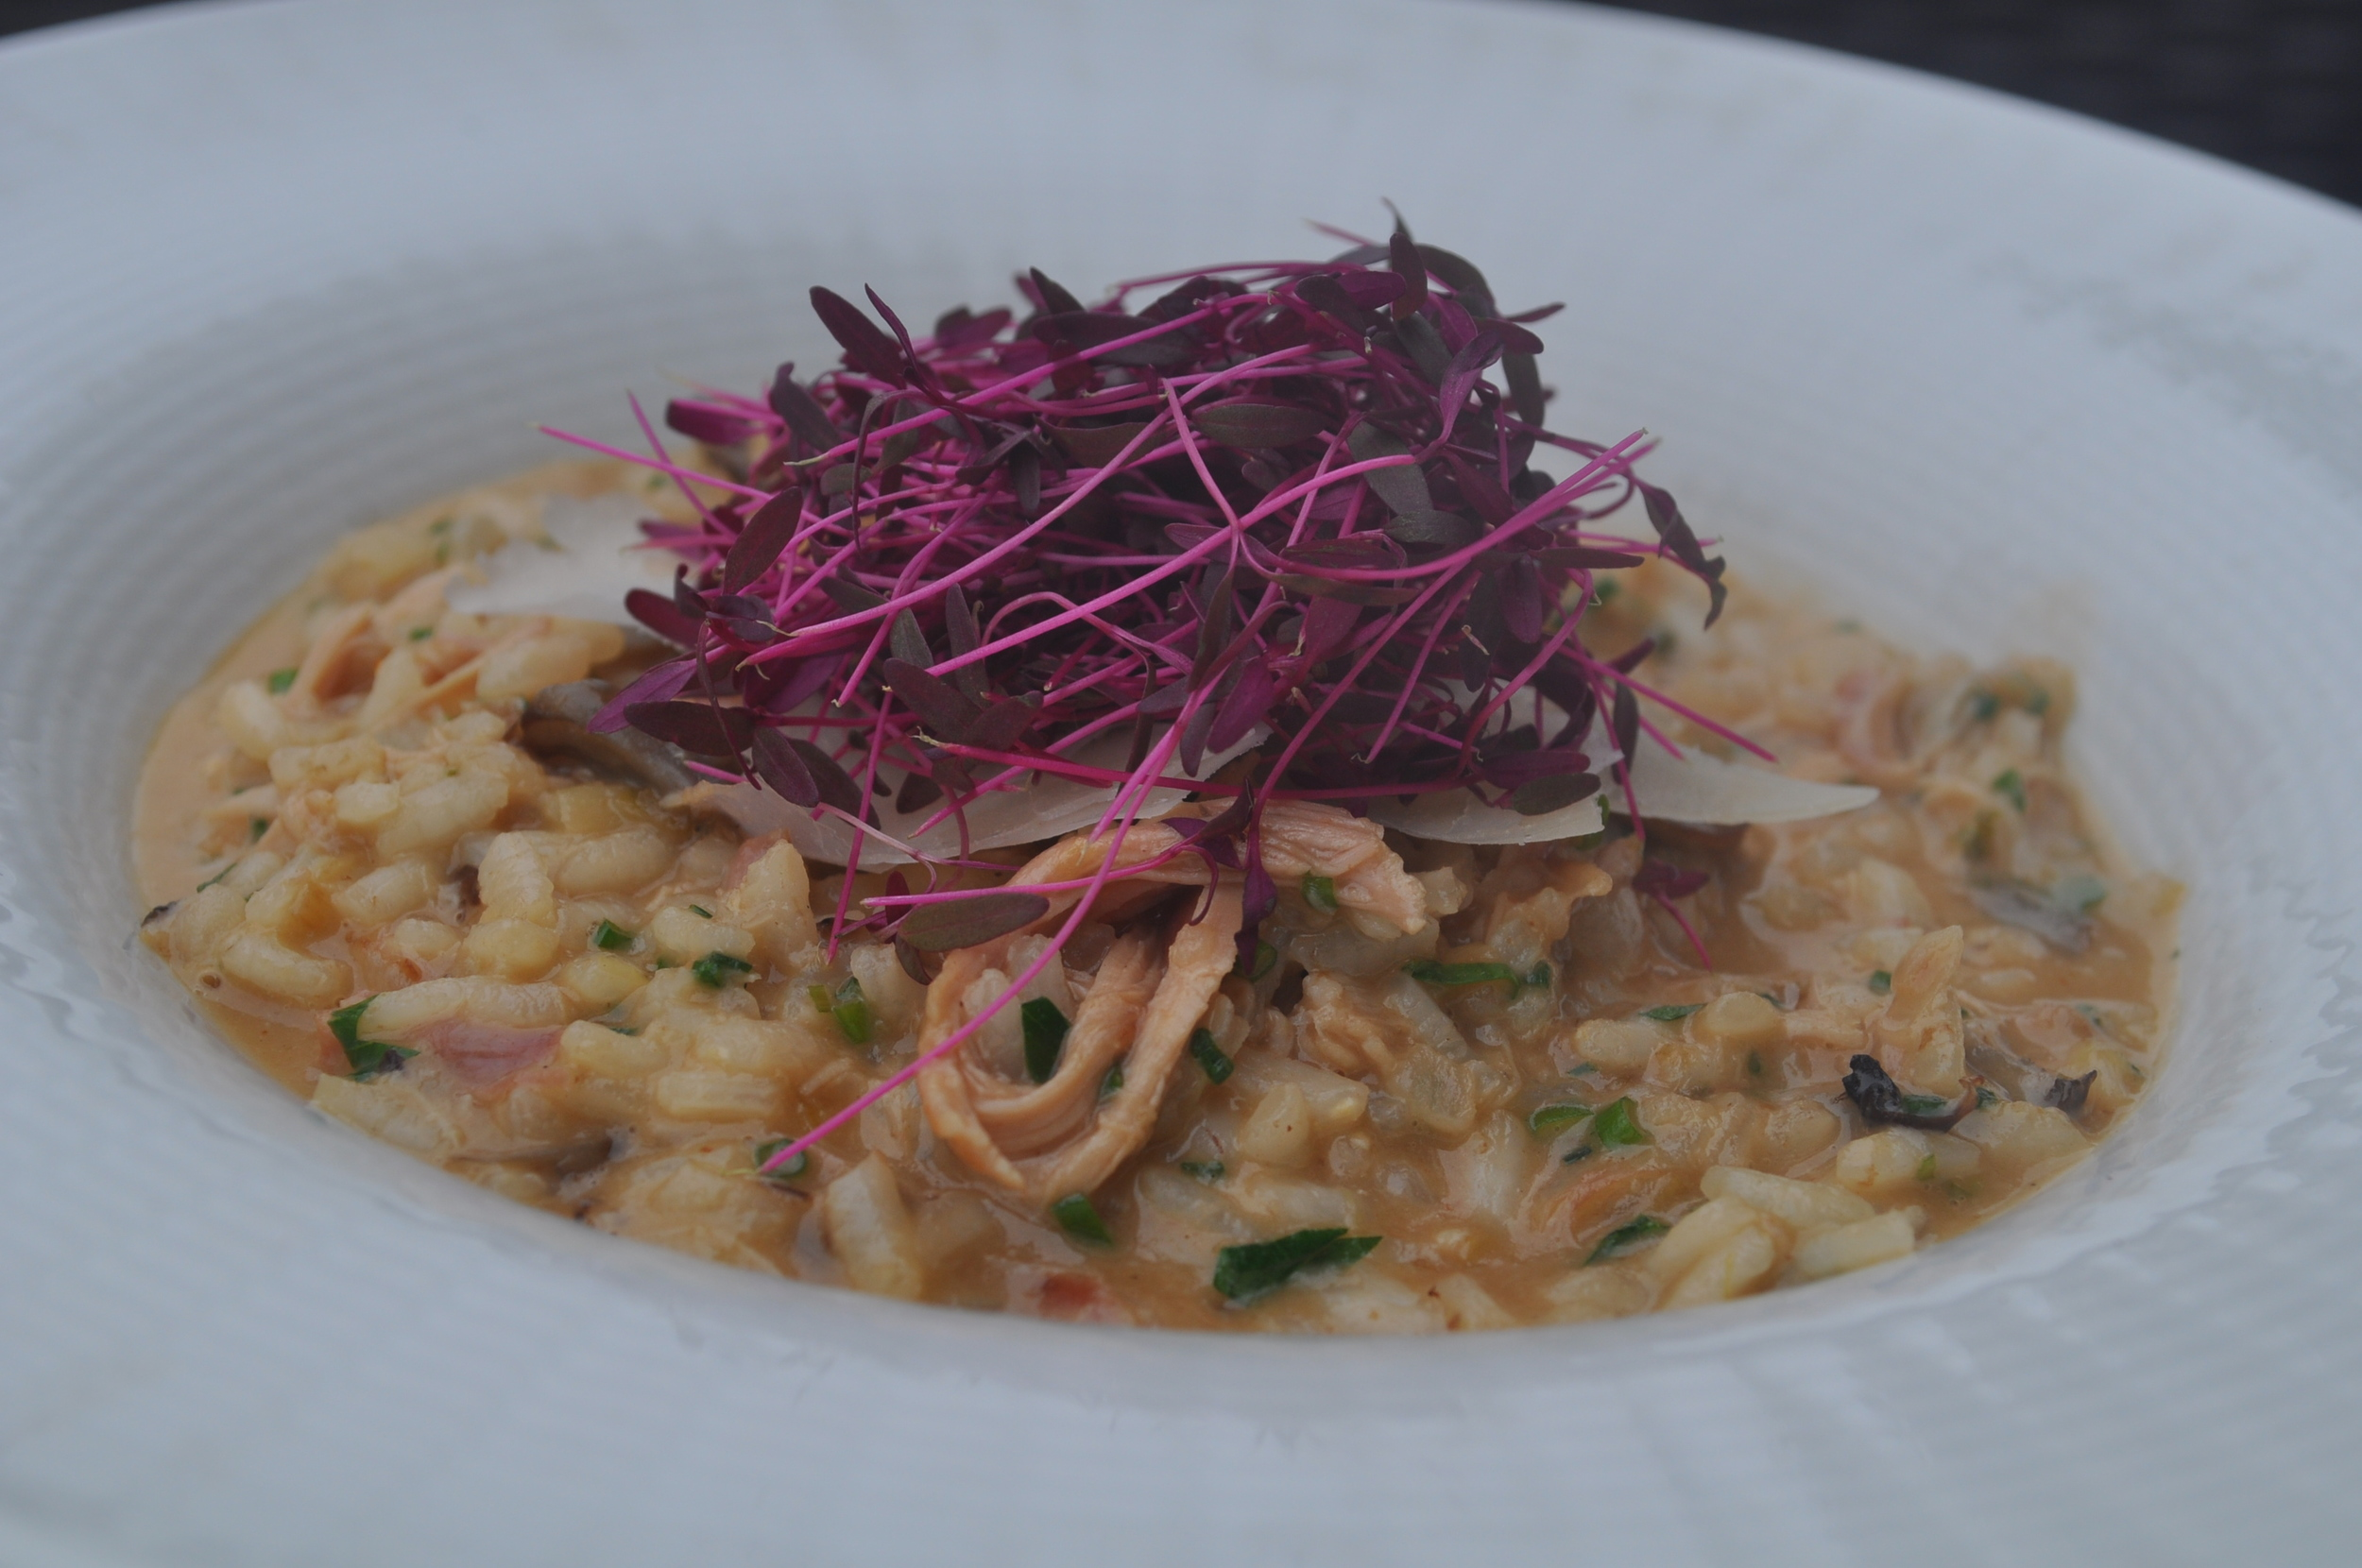 Wild chicken risotto is a highlight of the risotto of the day rotation.